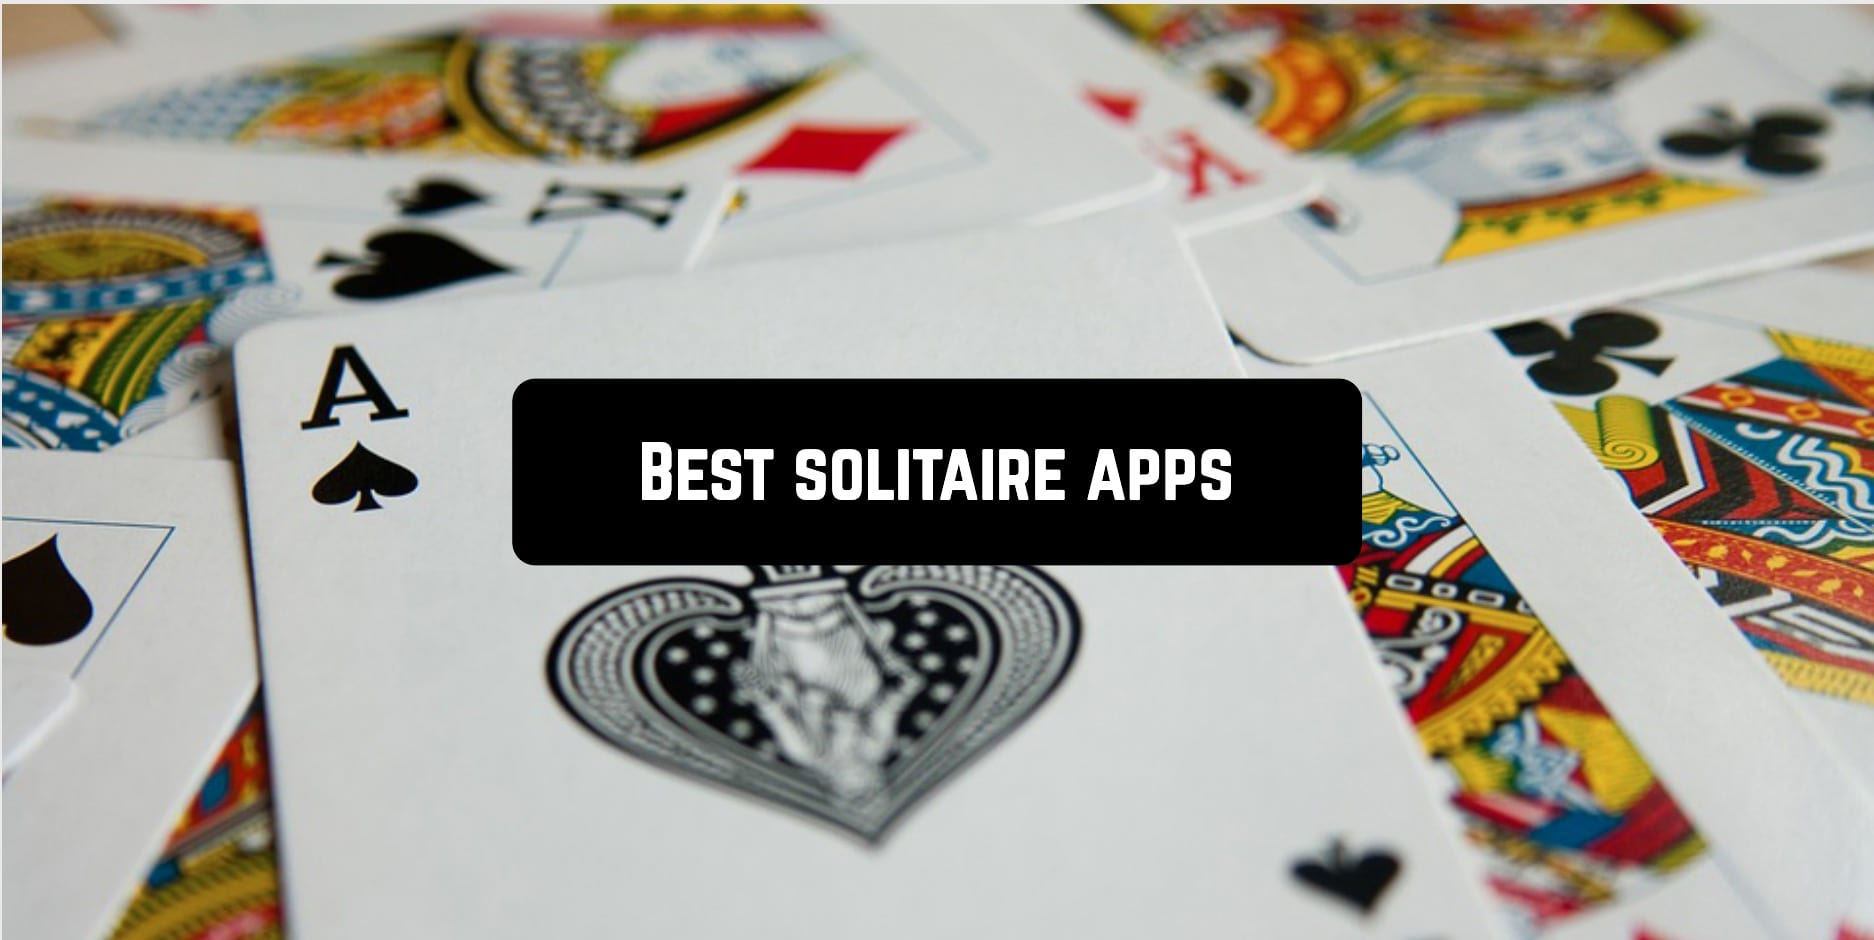 Best solitaire apps